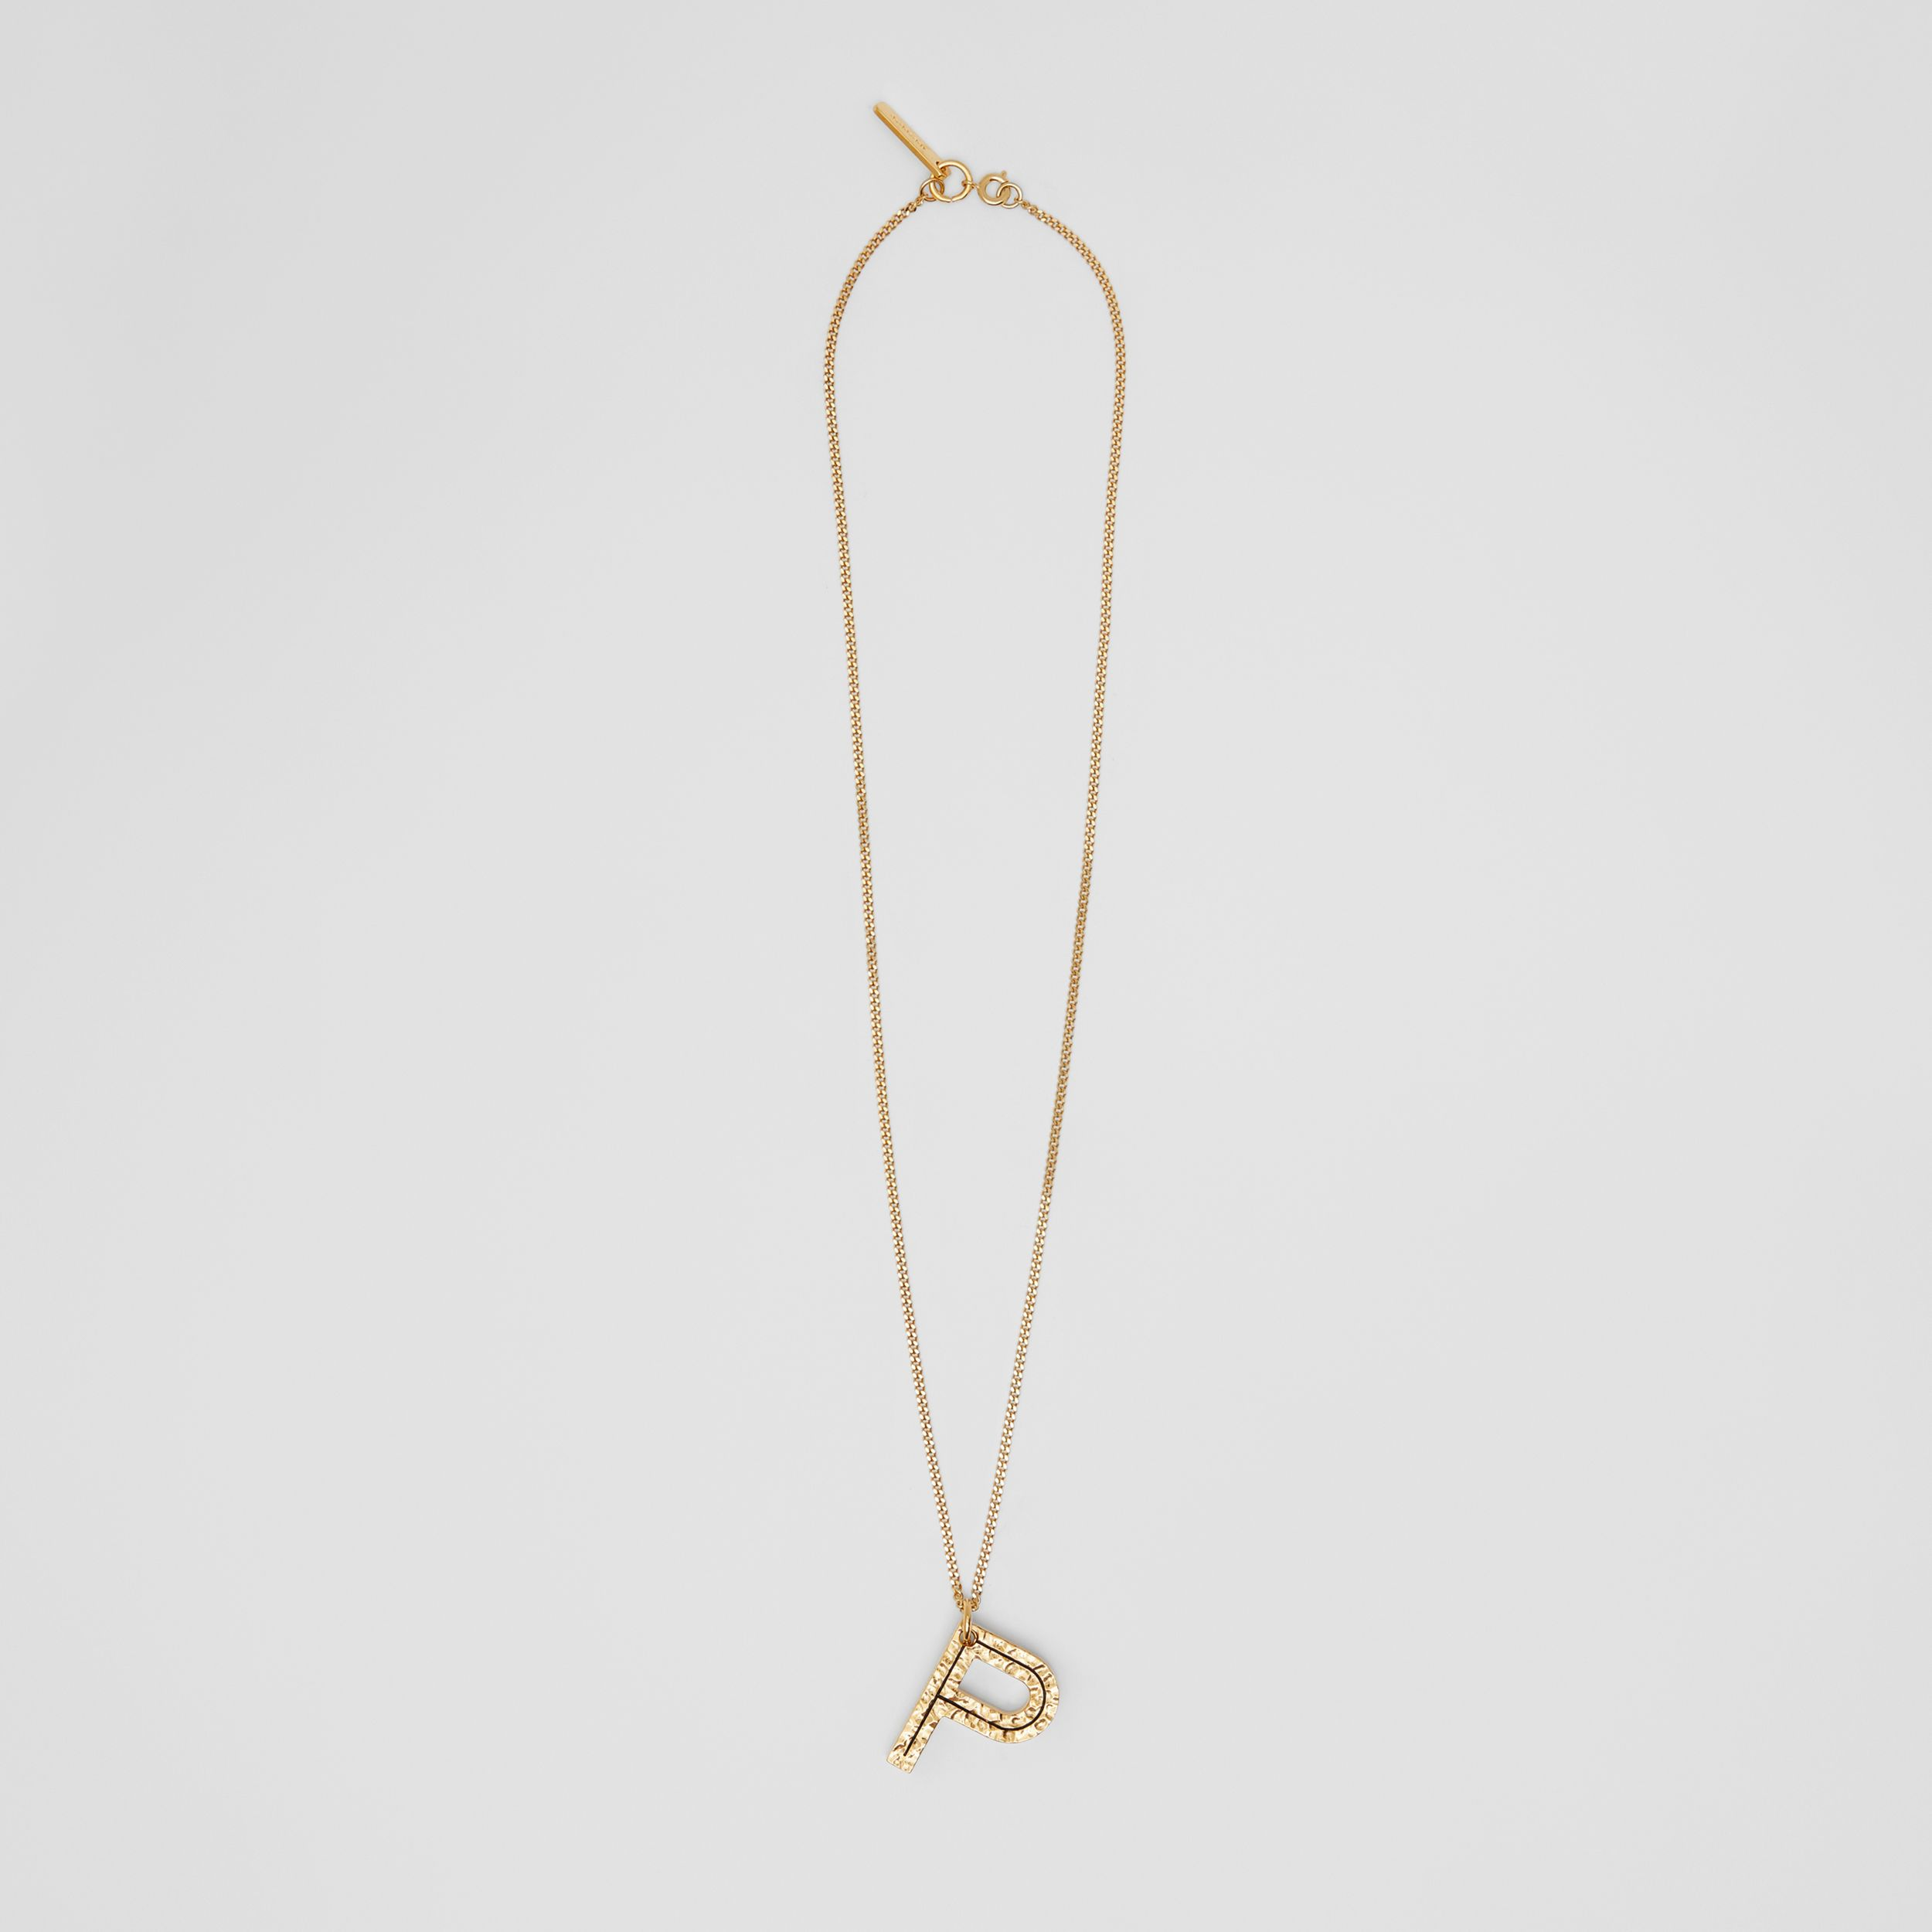 'P' Alphabet Charm Gold-plated Necklace in Light - Women | Burberry - 1